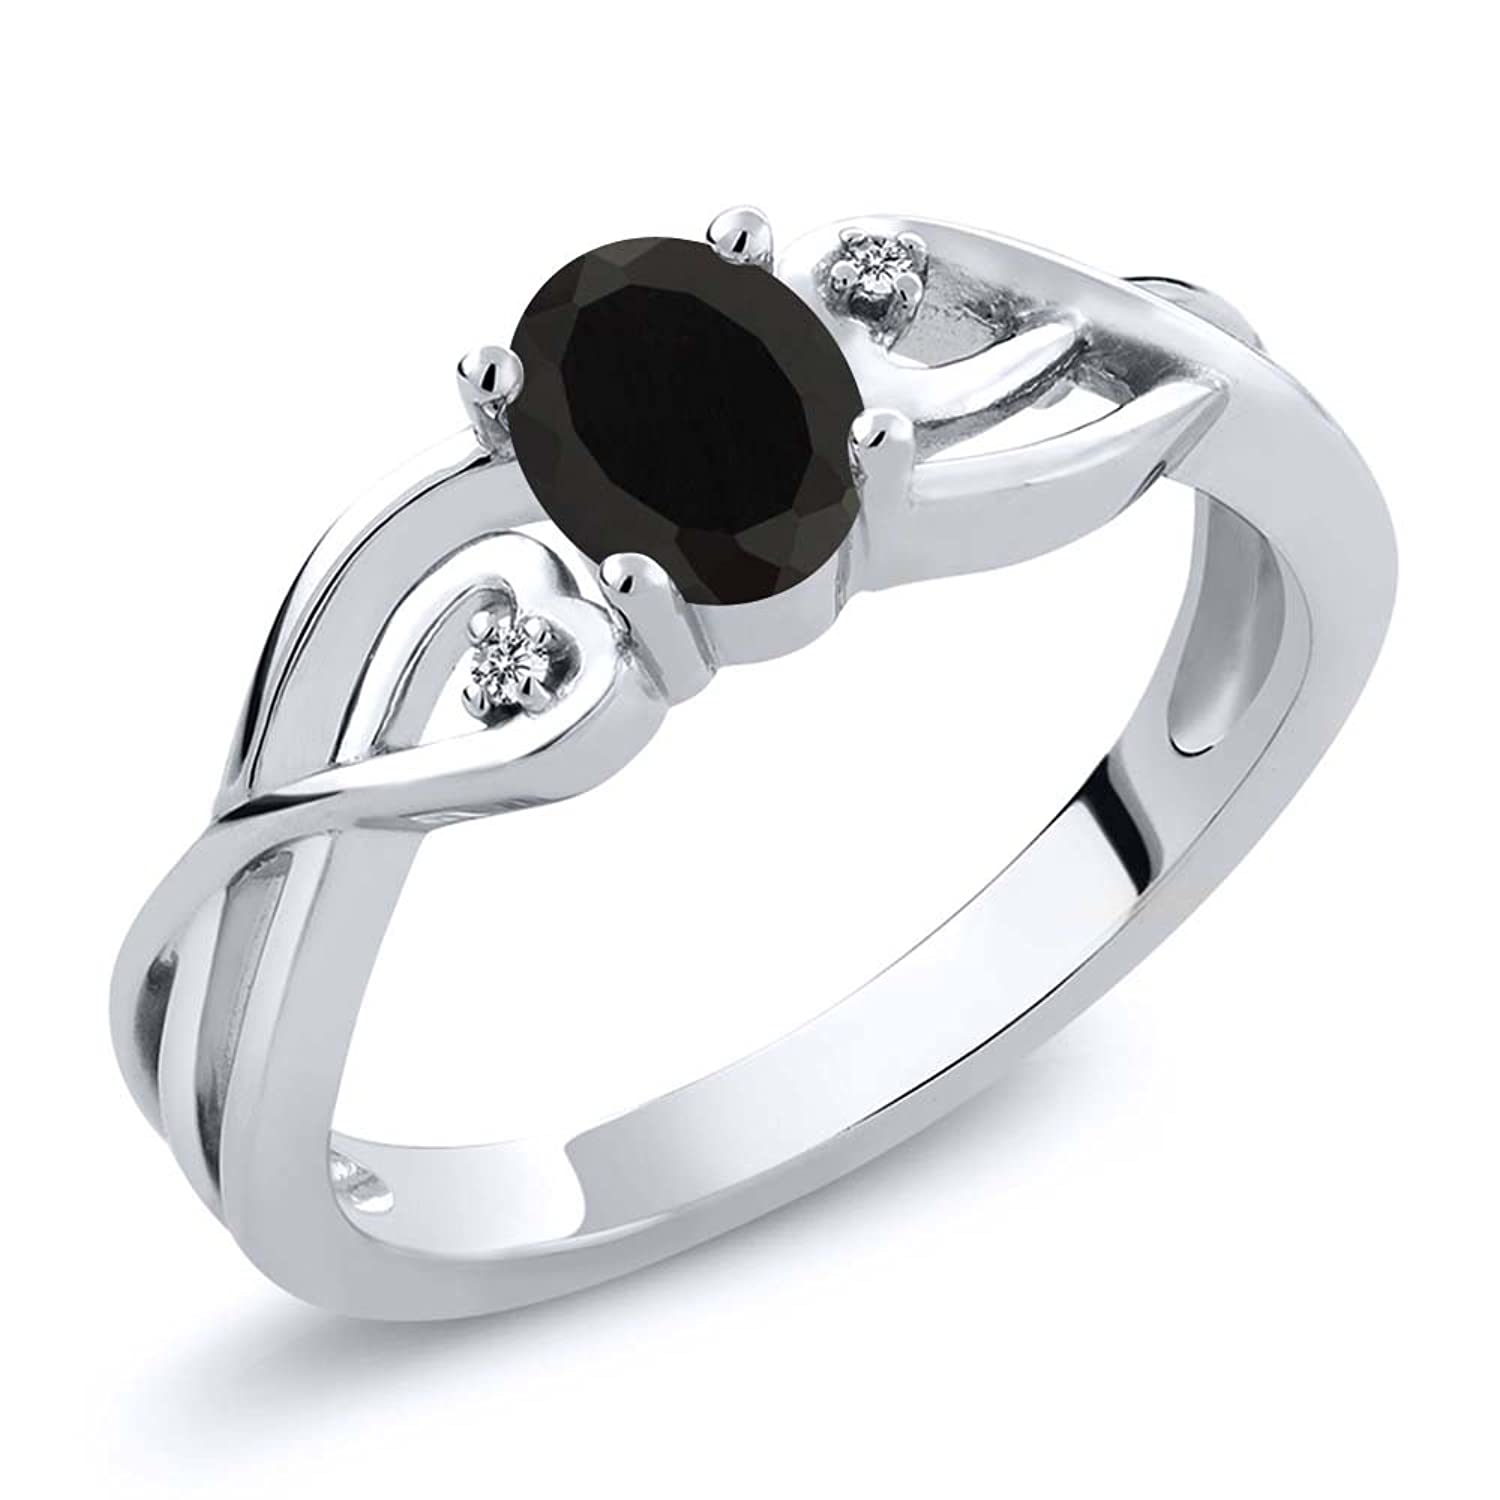 0.40 Ct Oval Black Onyx White Diamond 925 Sterling Silver Ring